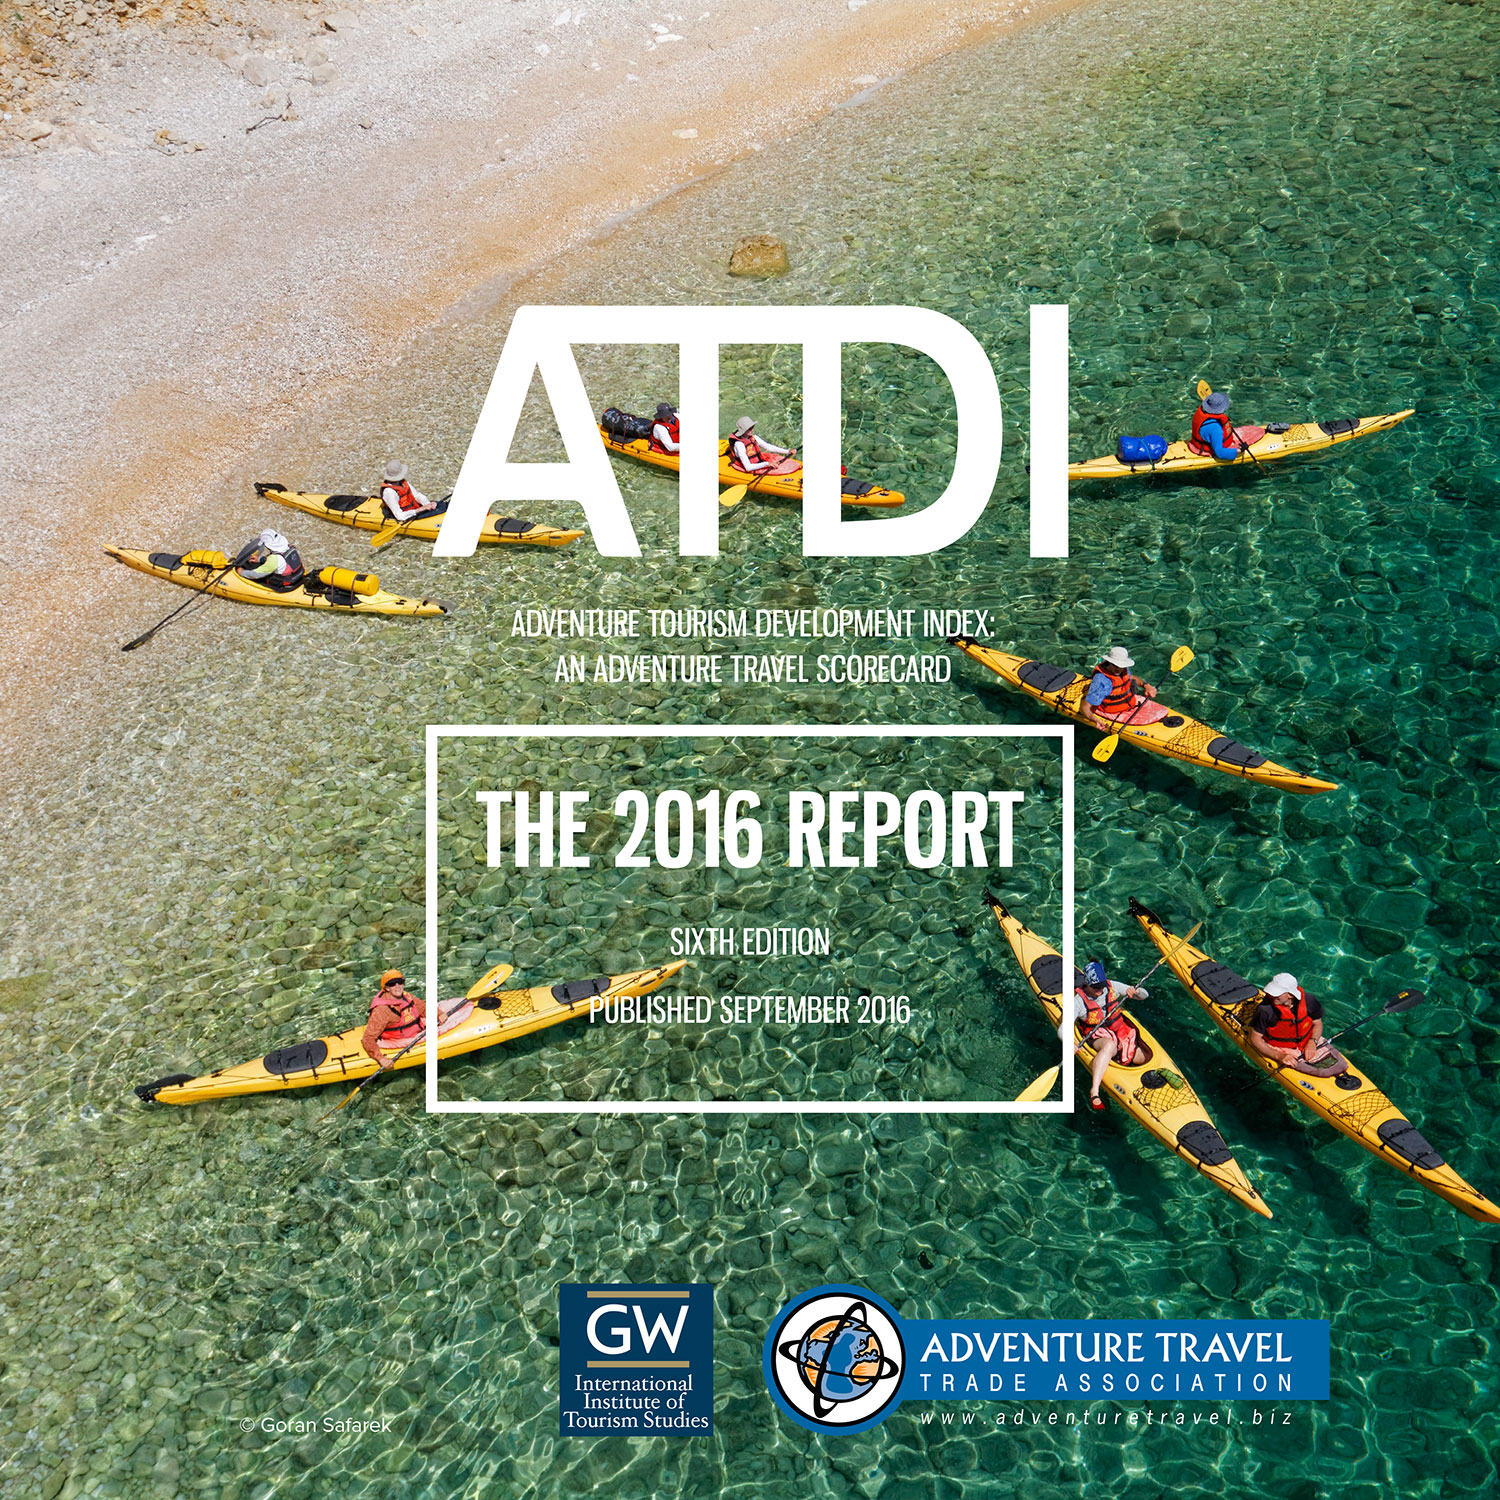 Adventure Travel: New Adventure Scorecard Reveals Global And Regional Trends